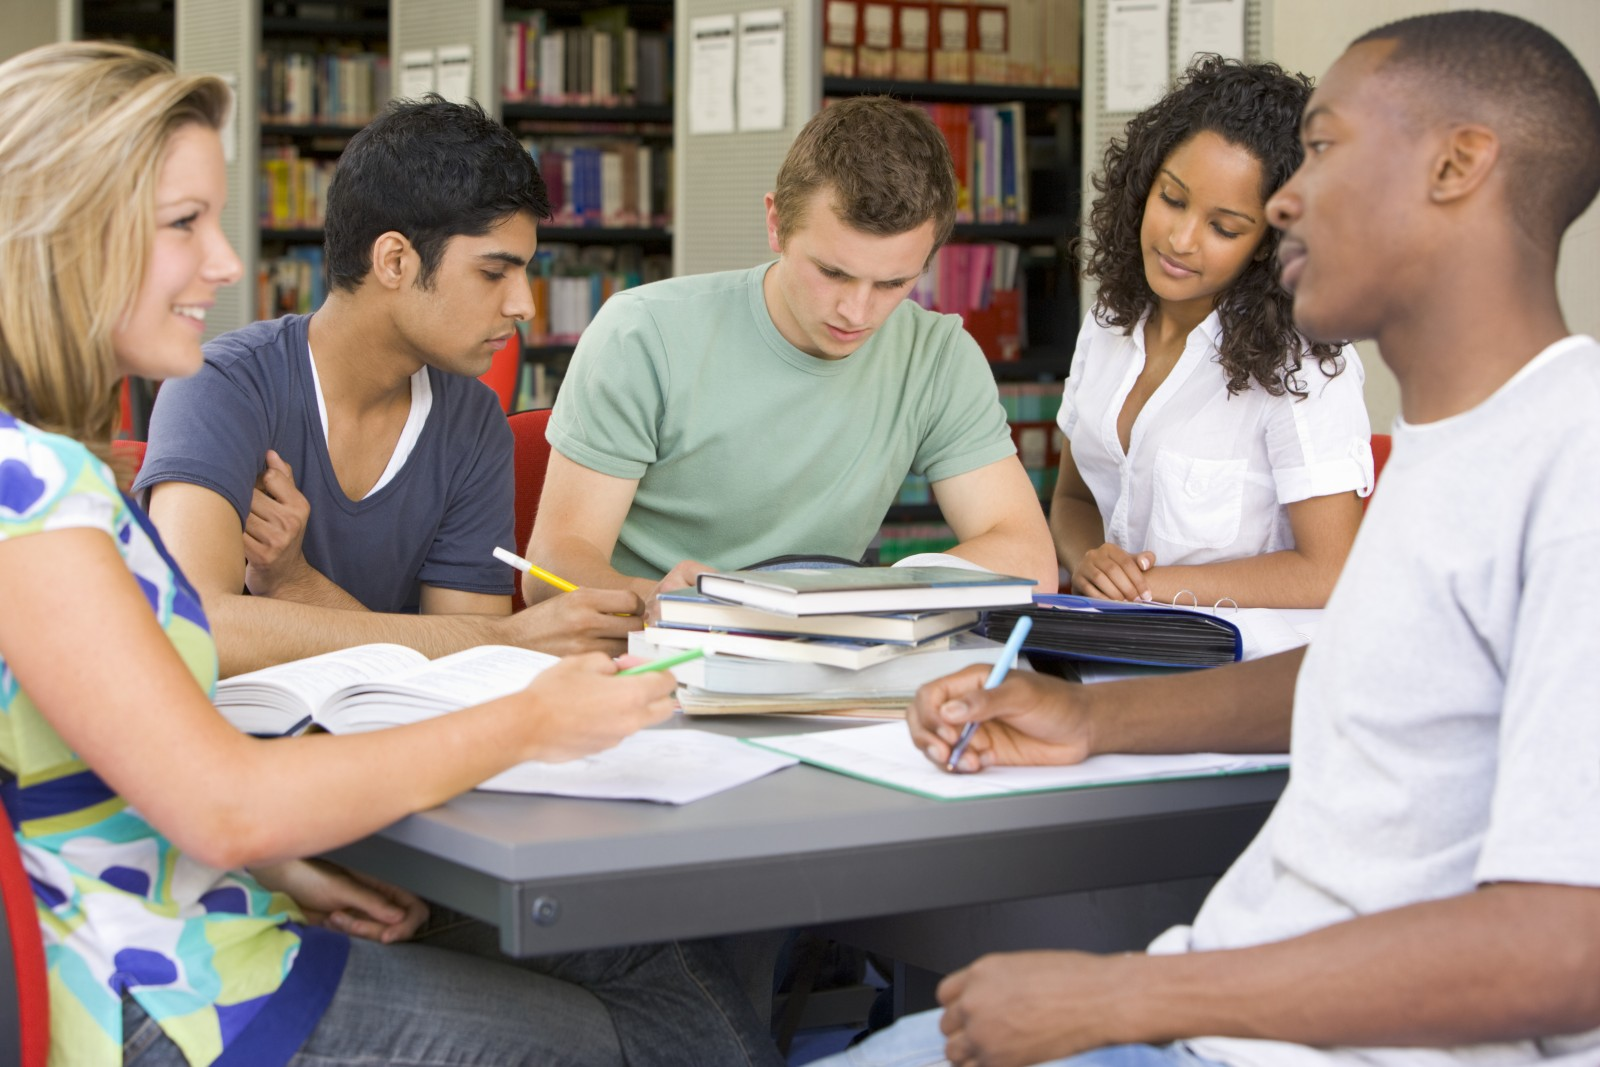 Students study together in a library.